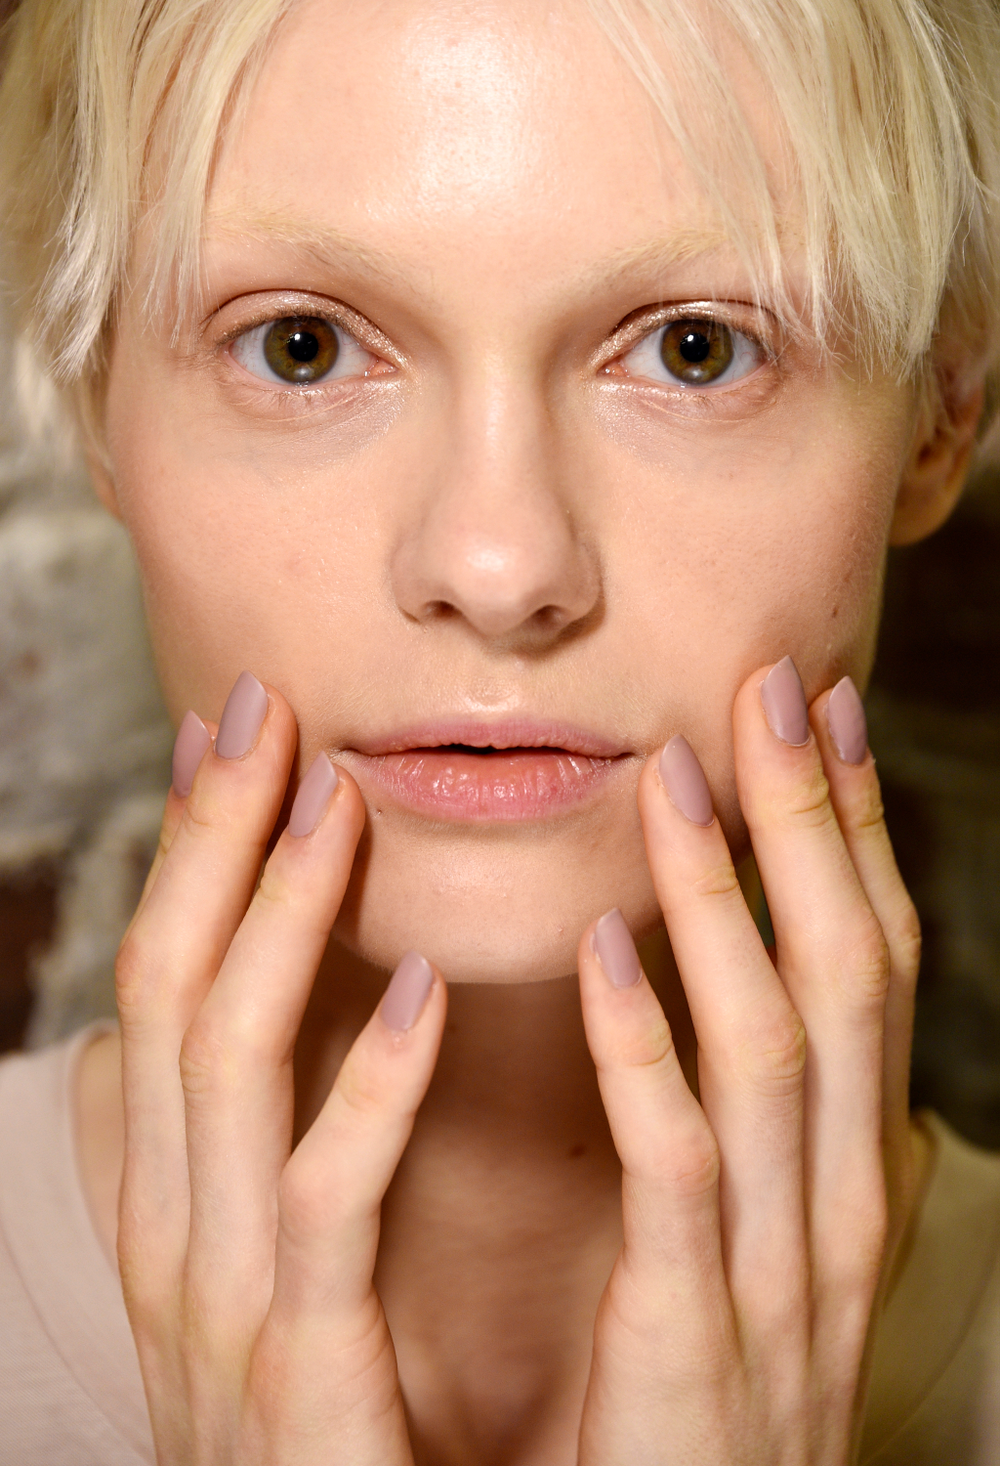 <p>Edwards used Perfect Match for a dusty rose colored nail at Ulla Johnson. Photo courtesy of Morgan Taylor.</p>